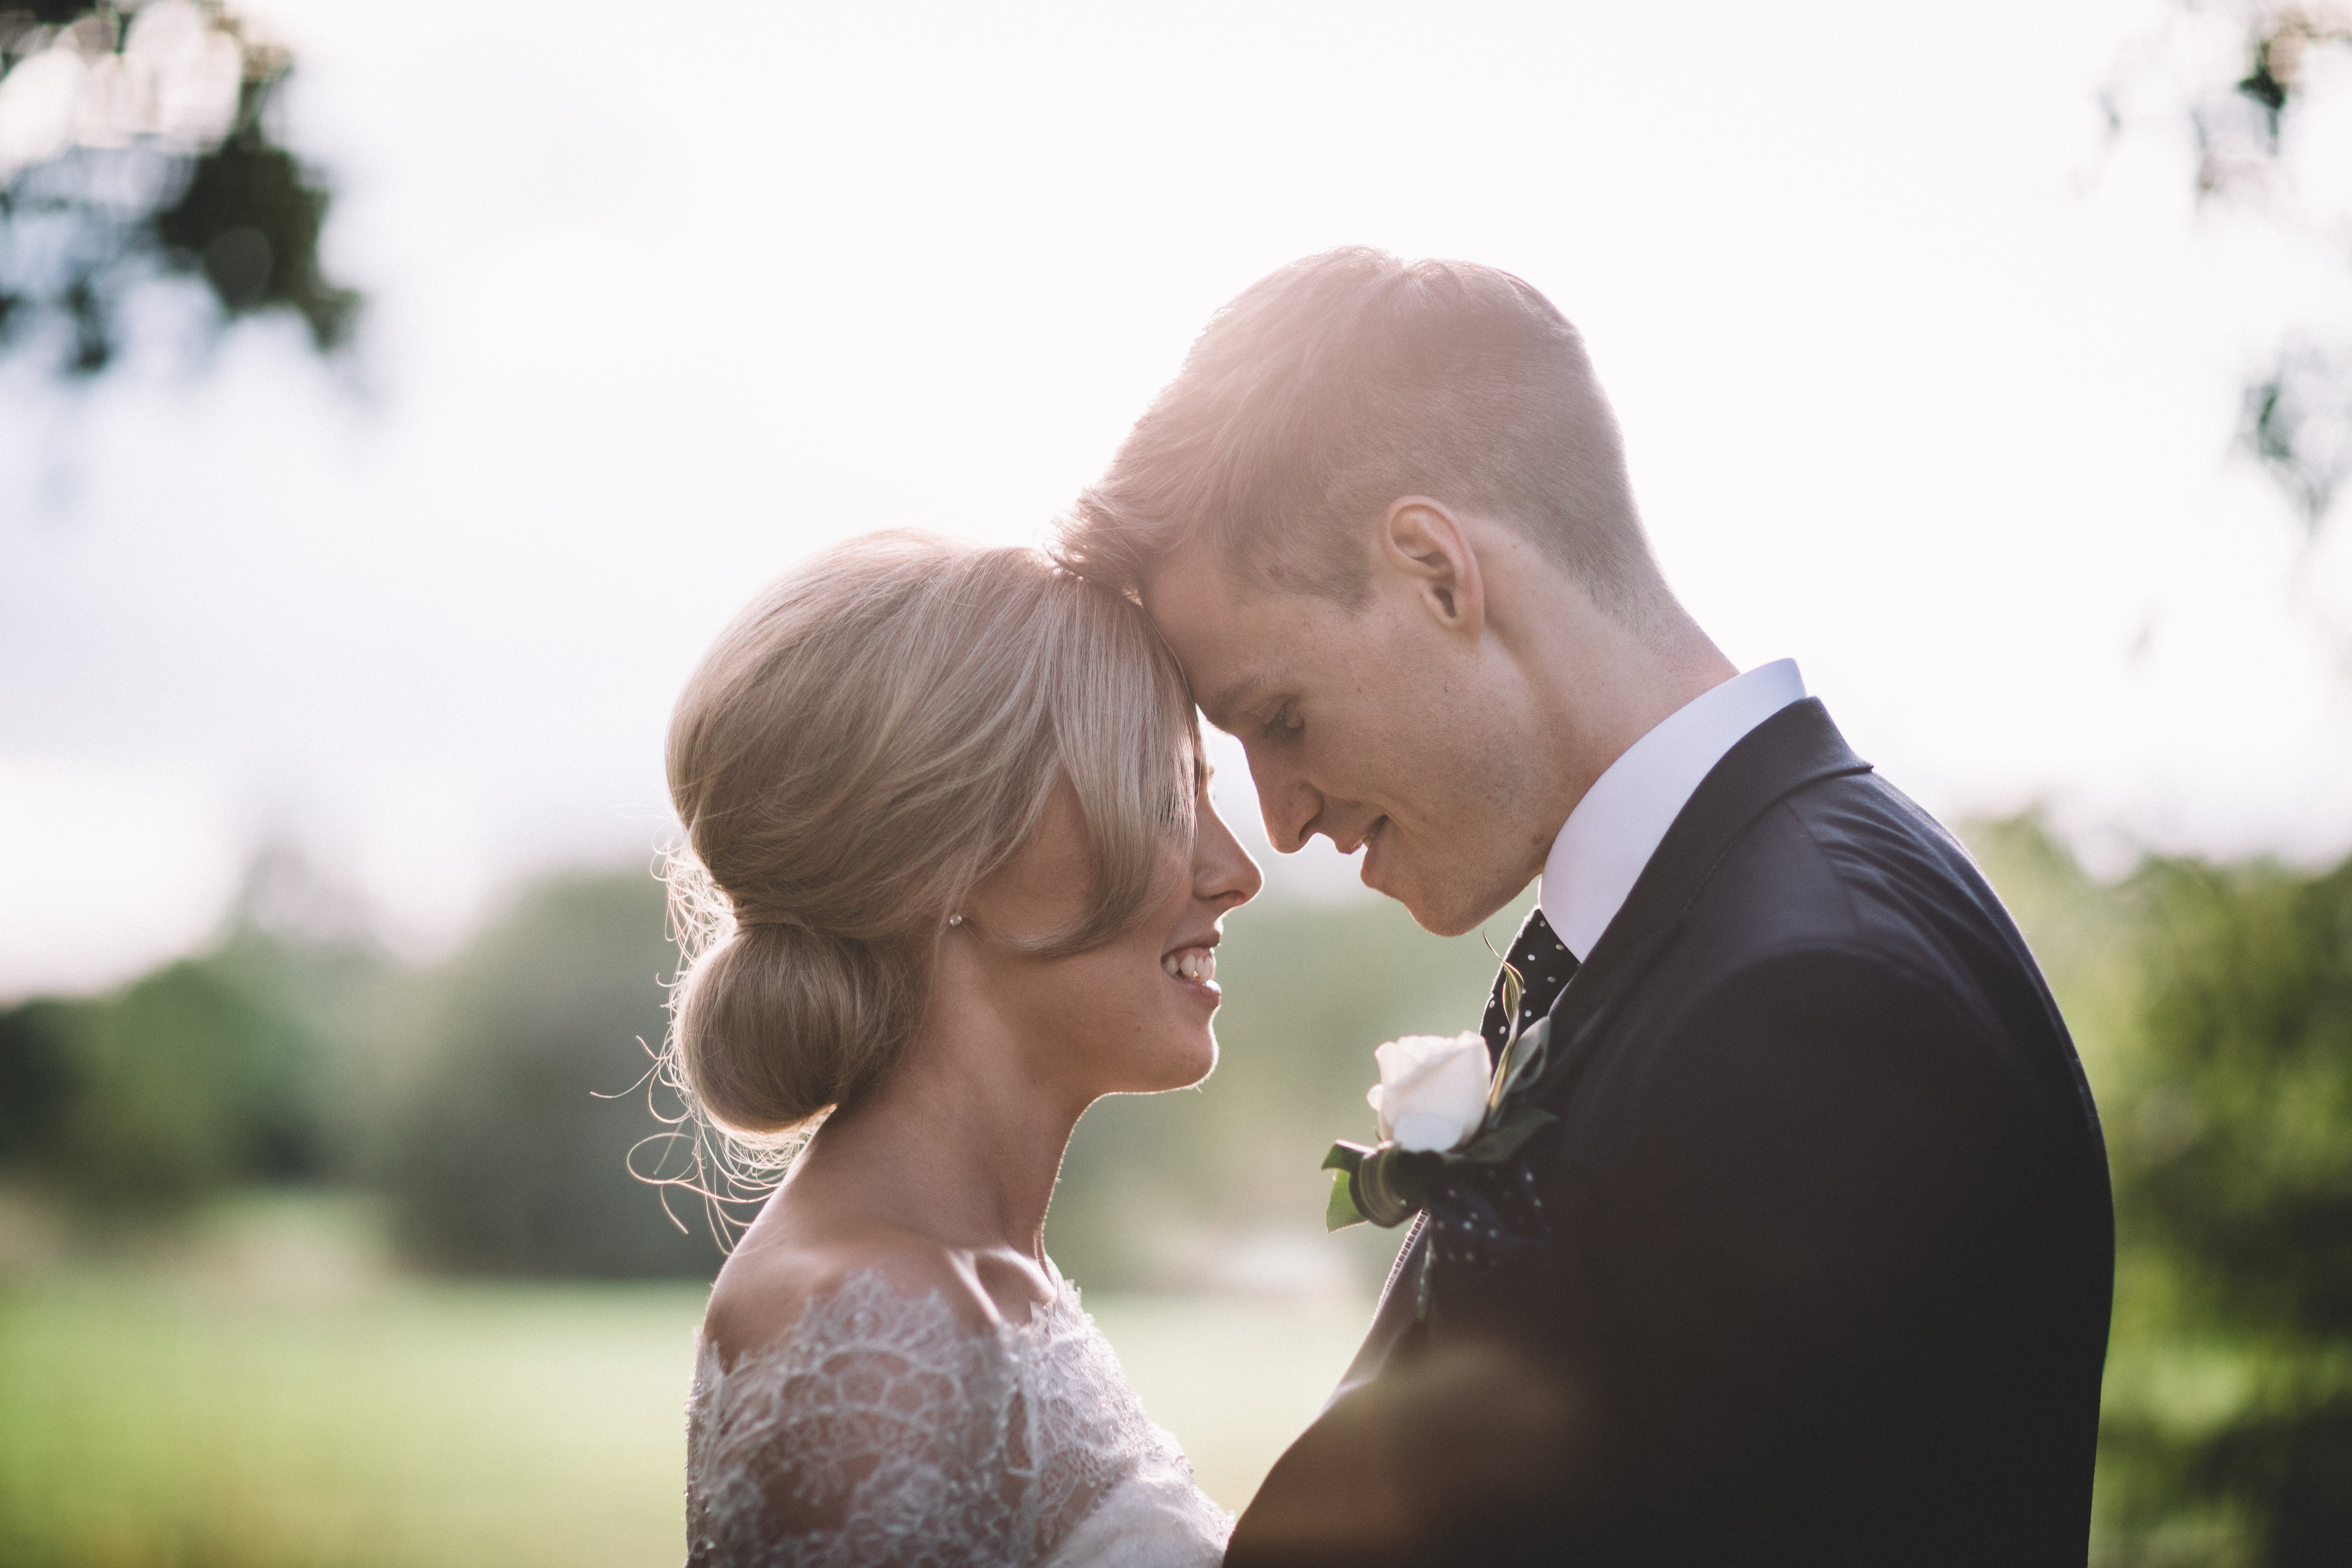 August Romance : Katy + Ben's Laid-Back Wedding Day in Cheshire